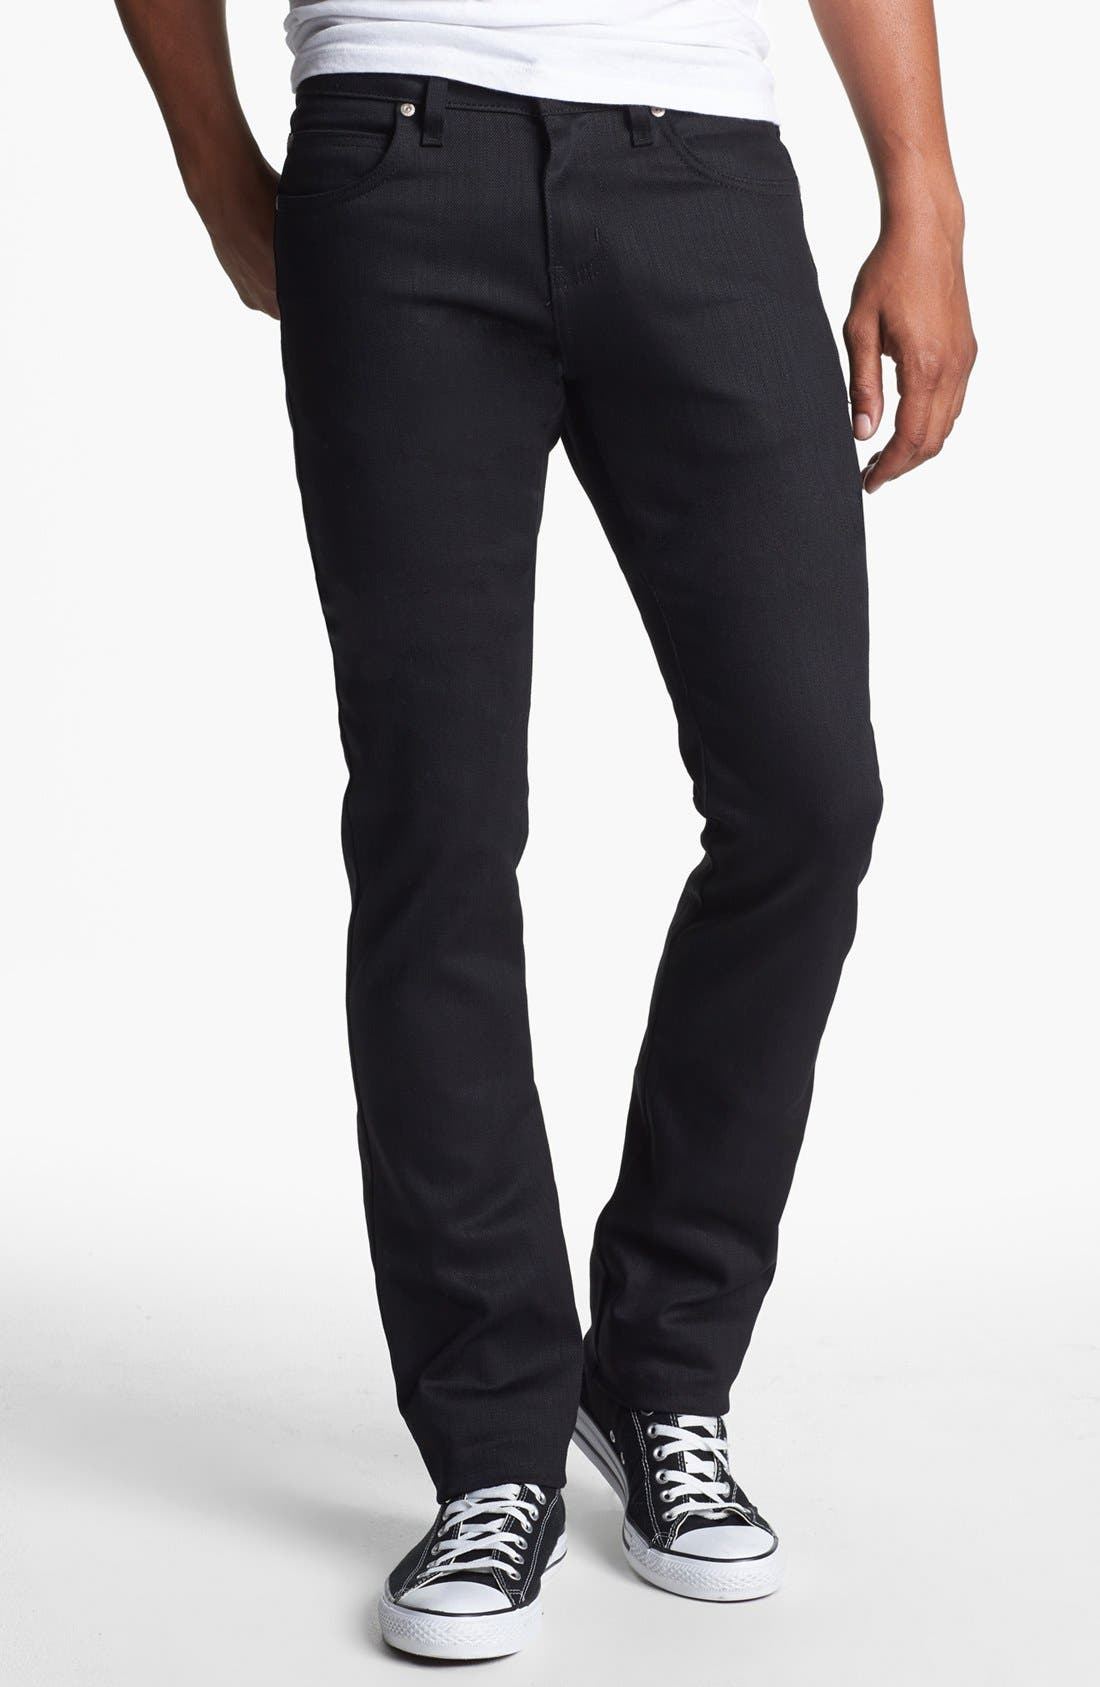 Skinny Guy Skinny Fit Jeans,                         Main,                         color, BLACK POWER STRETCH